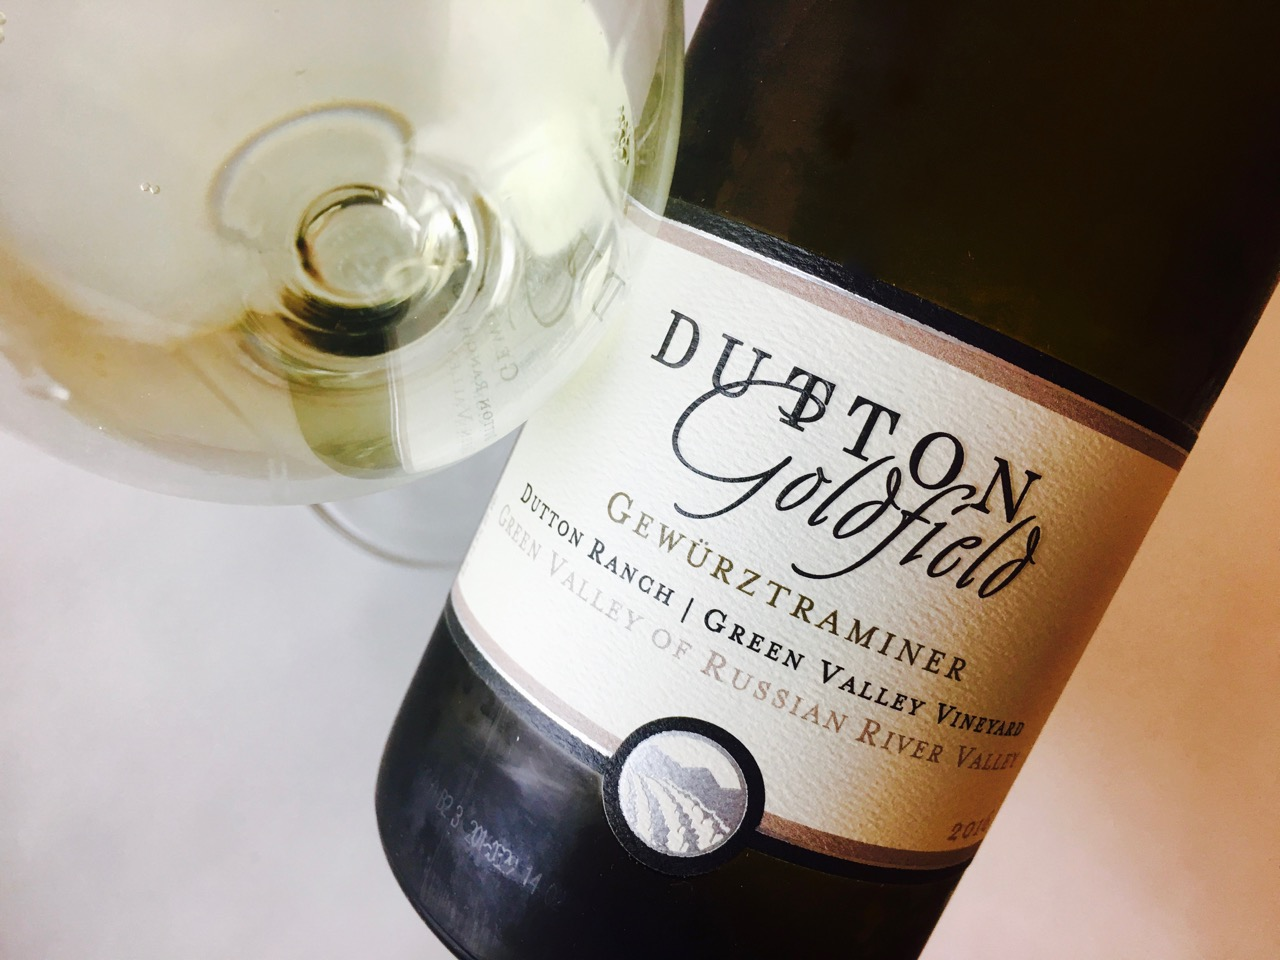 2016 Dutton Goldfield Gewürztraminer Green Valley Vineyard Green Valley of Russian River Valley